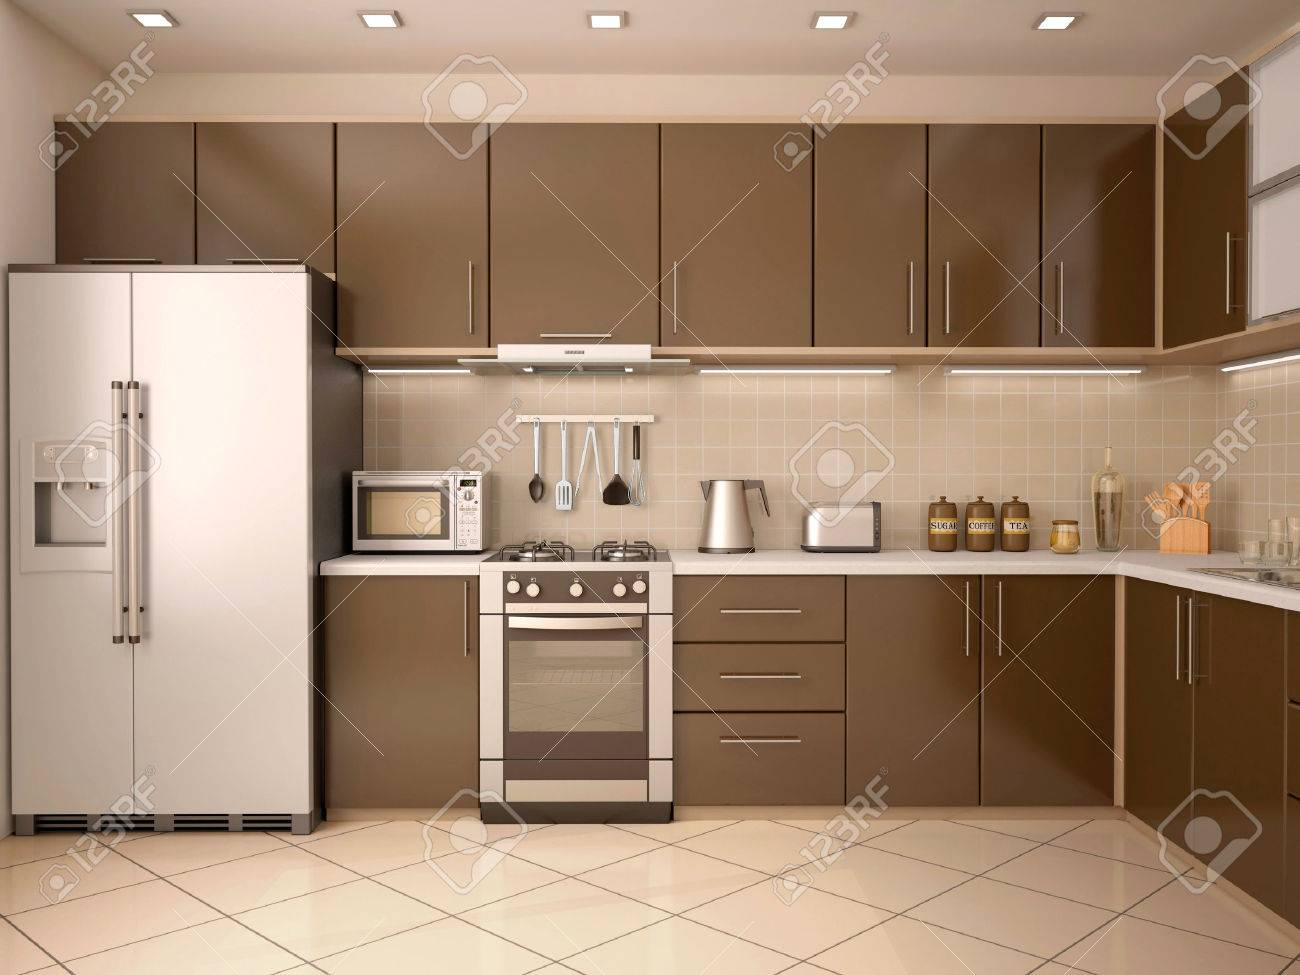 D Illustration Of Modern Style Kitchen Interior Stock Photo - Style de cuisine moderne photos